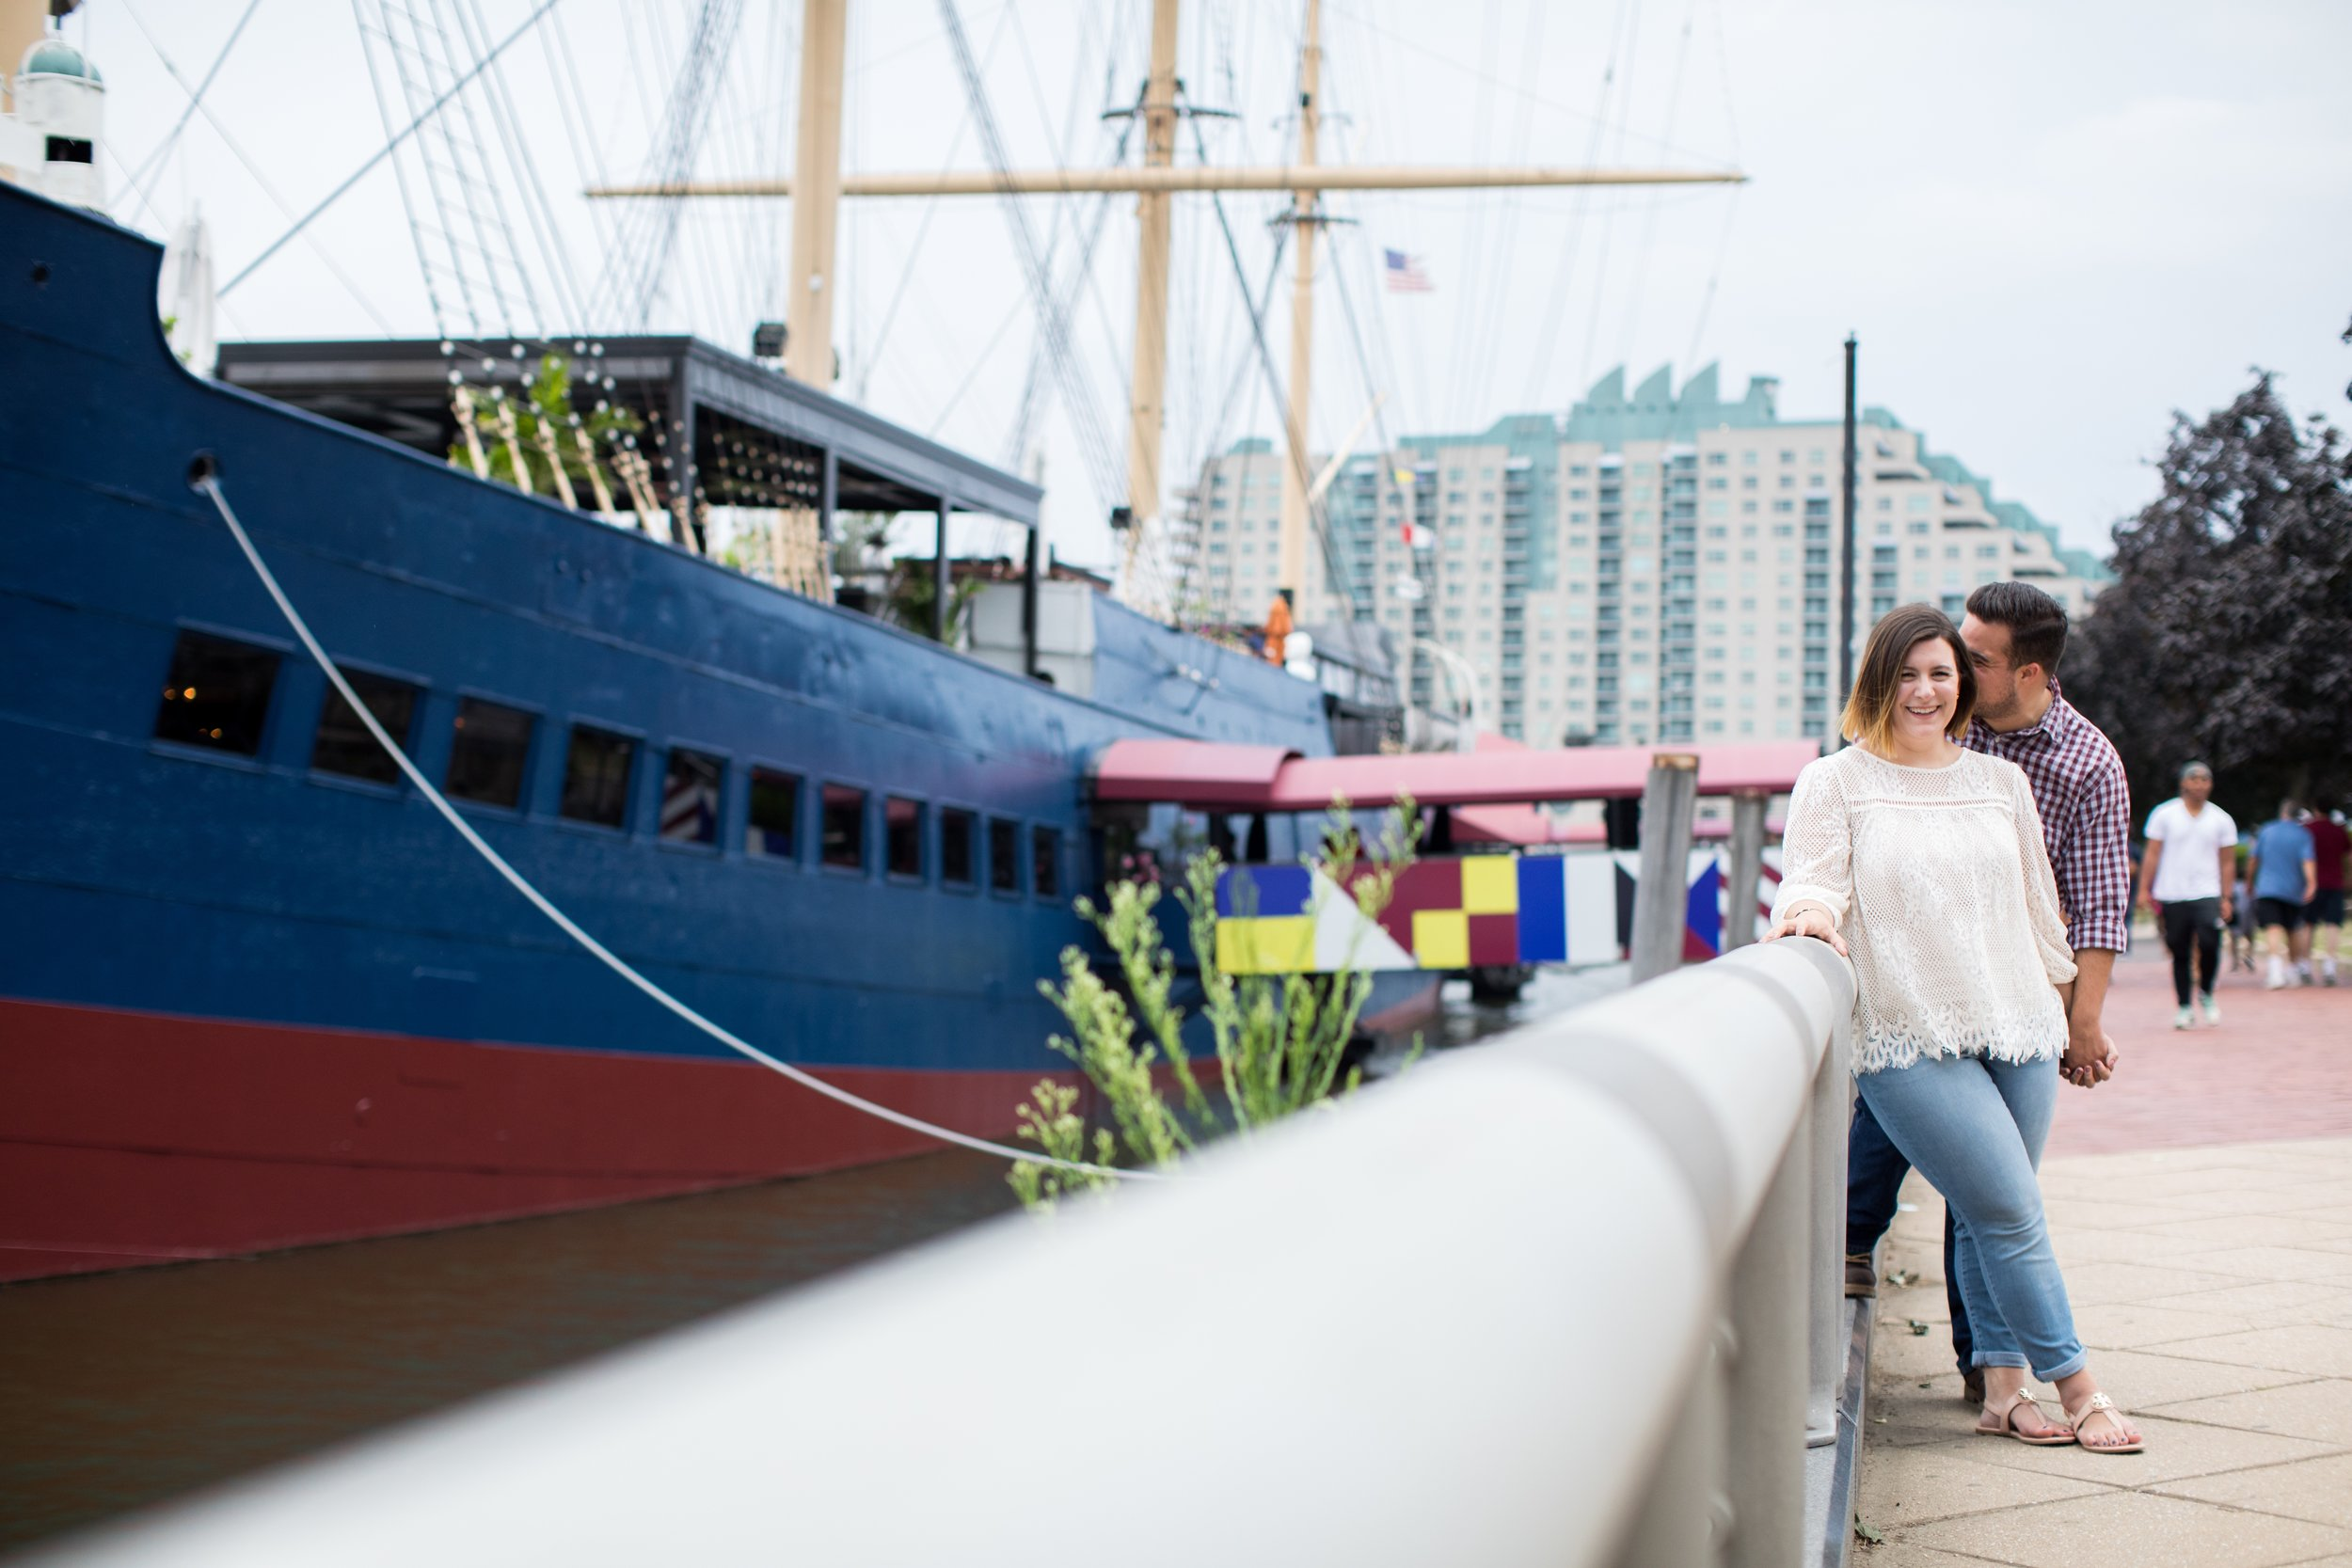 Jaclyn and Parker spend a summer evening at Spruce Street Harbor in Philadelphia.